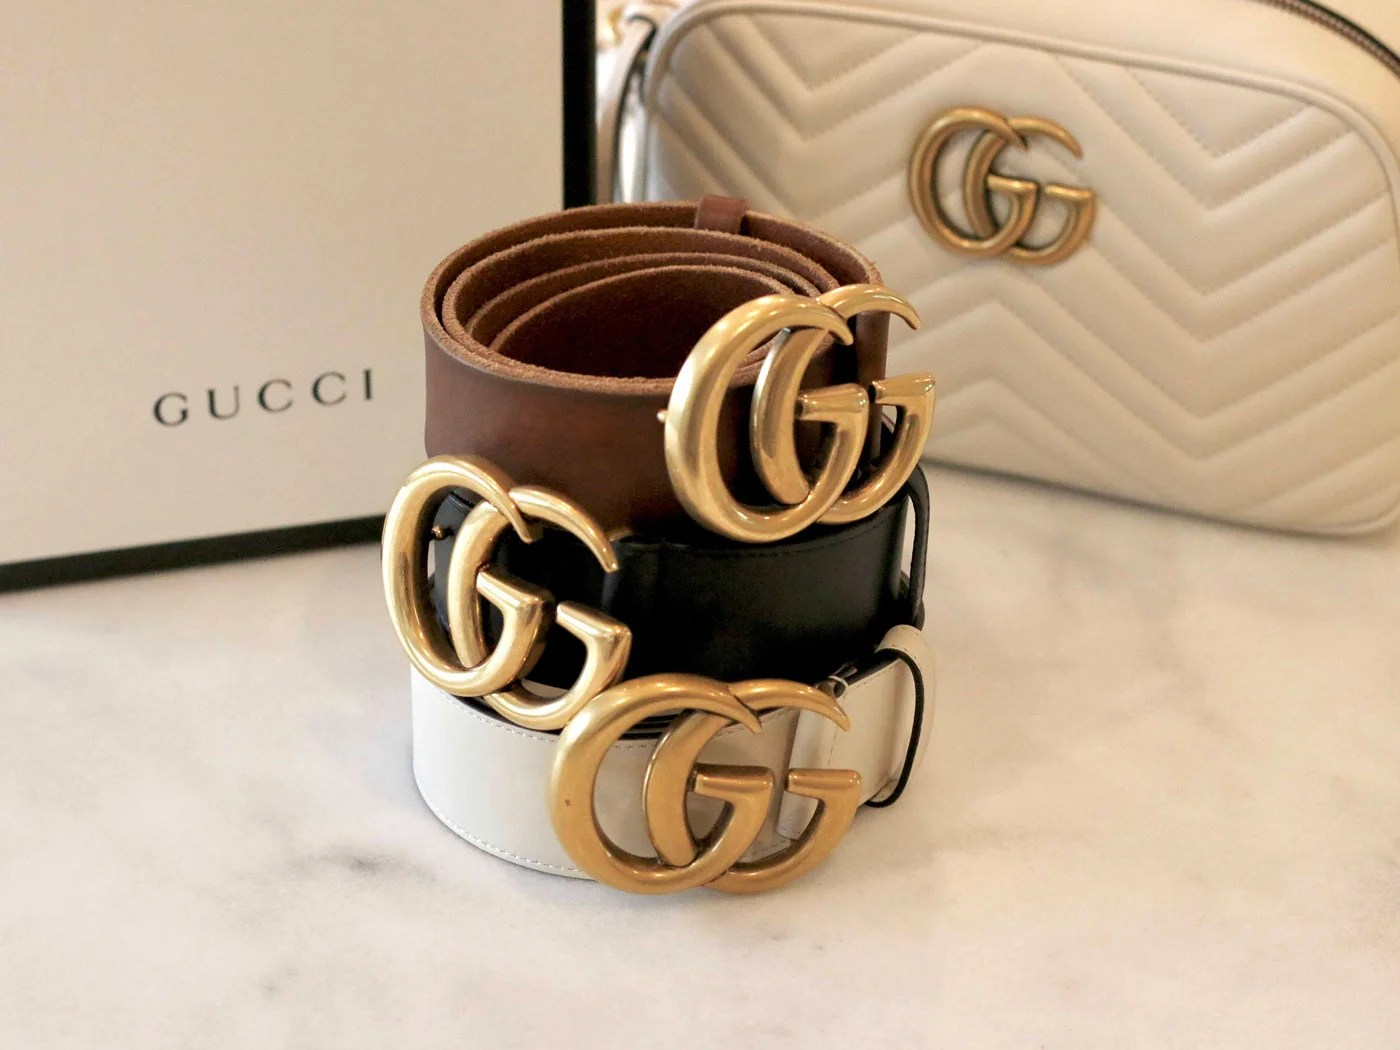 ec42799fc65 Gucci Marmont Belt - Sizing and Adding More Holes